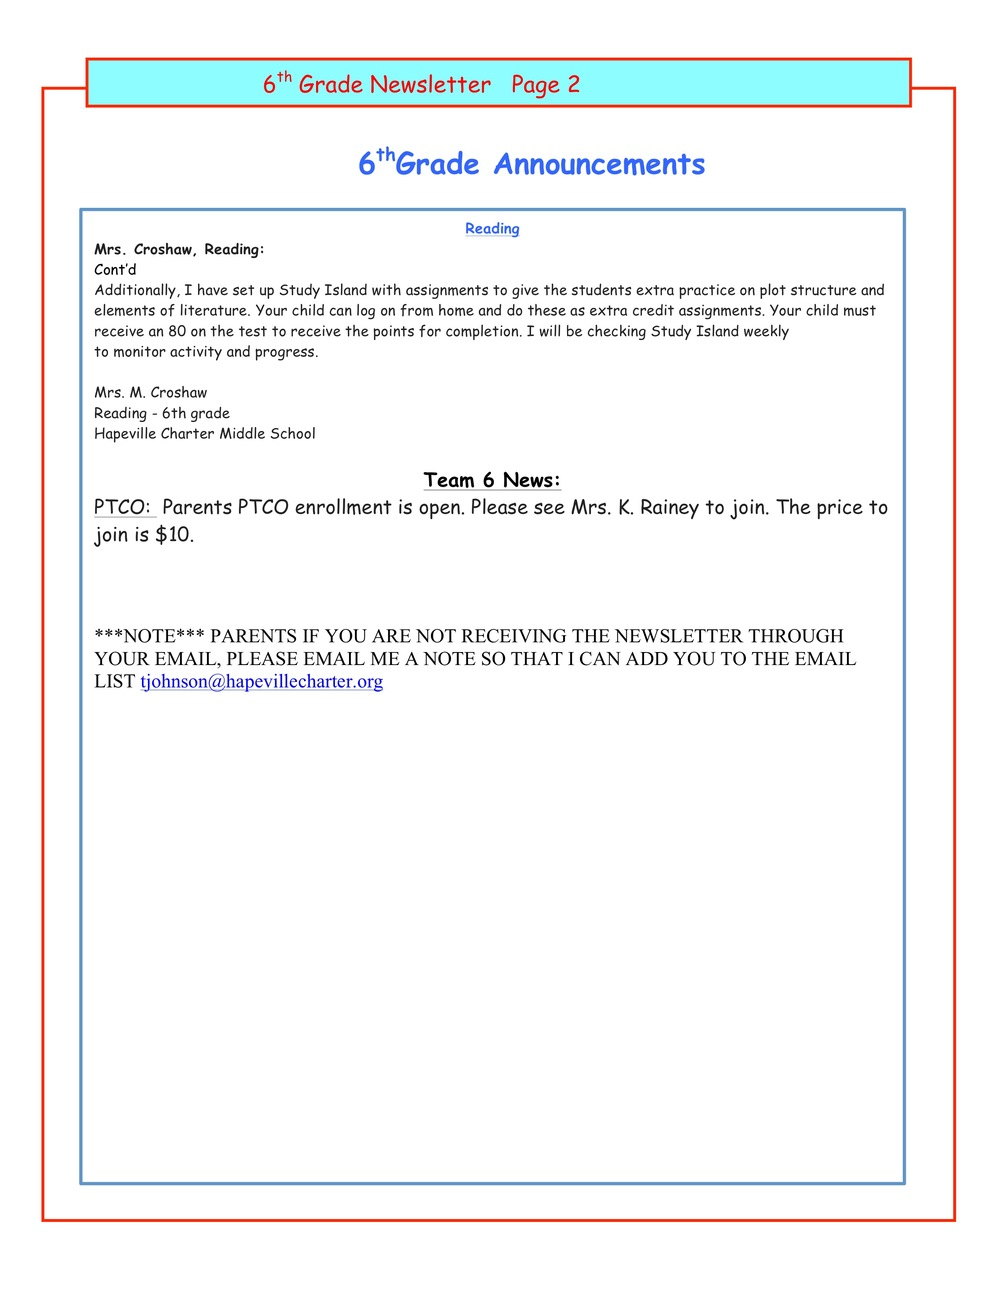 Newsletter Image6th-Grade-2-1-2016 2.jpeg